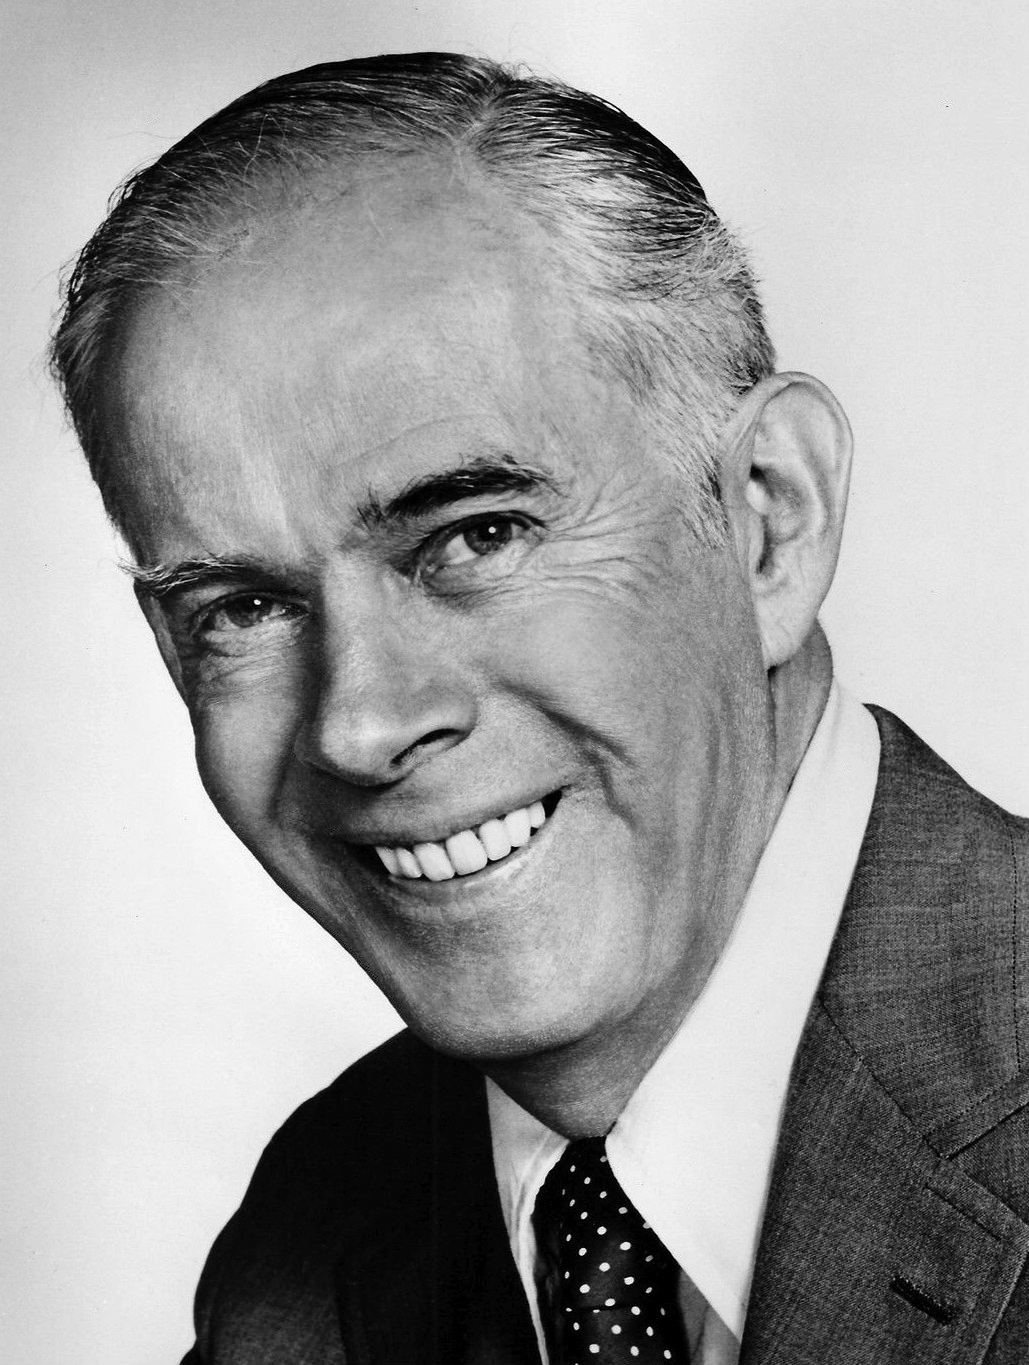 Harry_Morgan_in_1975.JPG